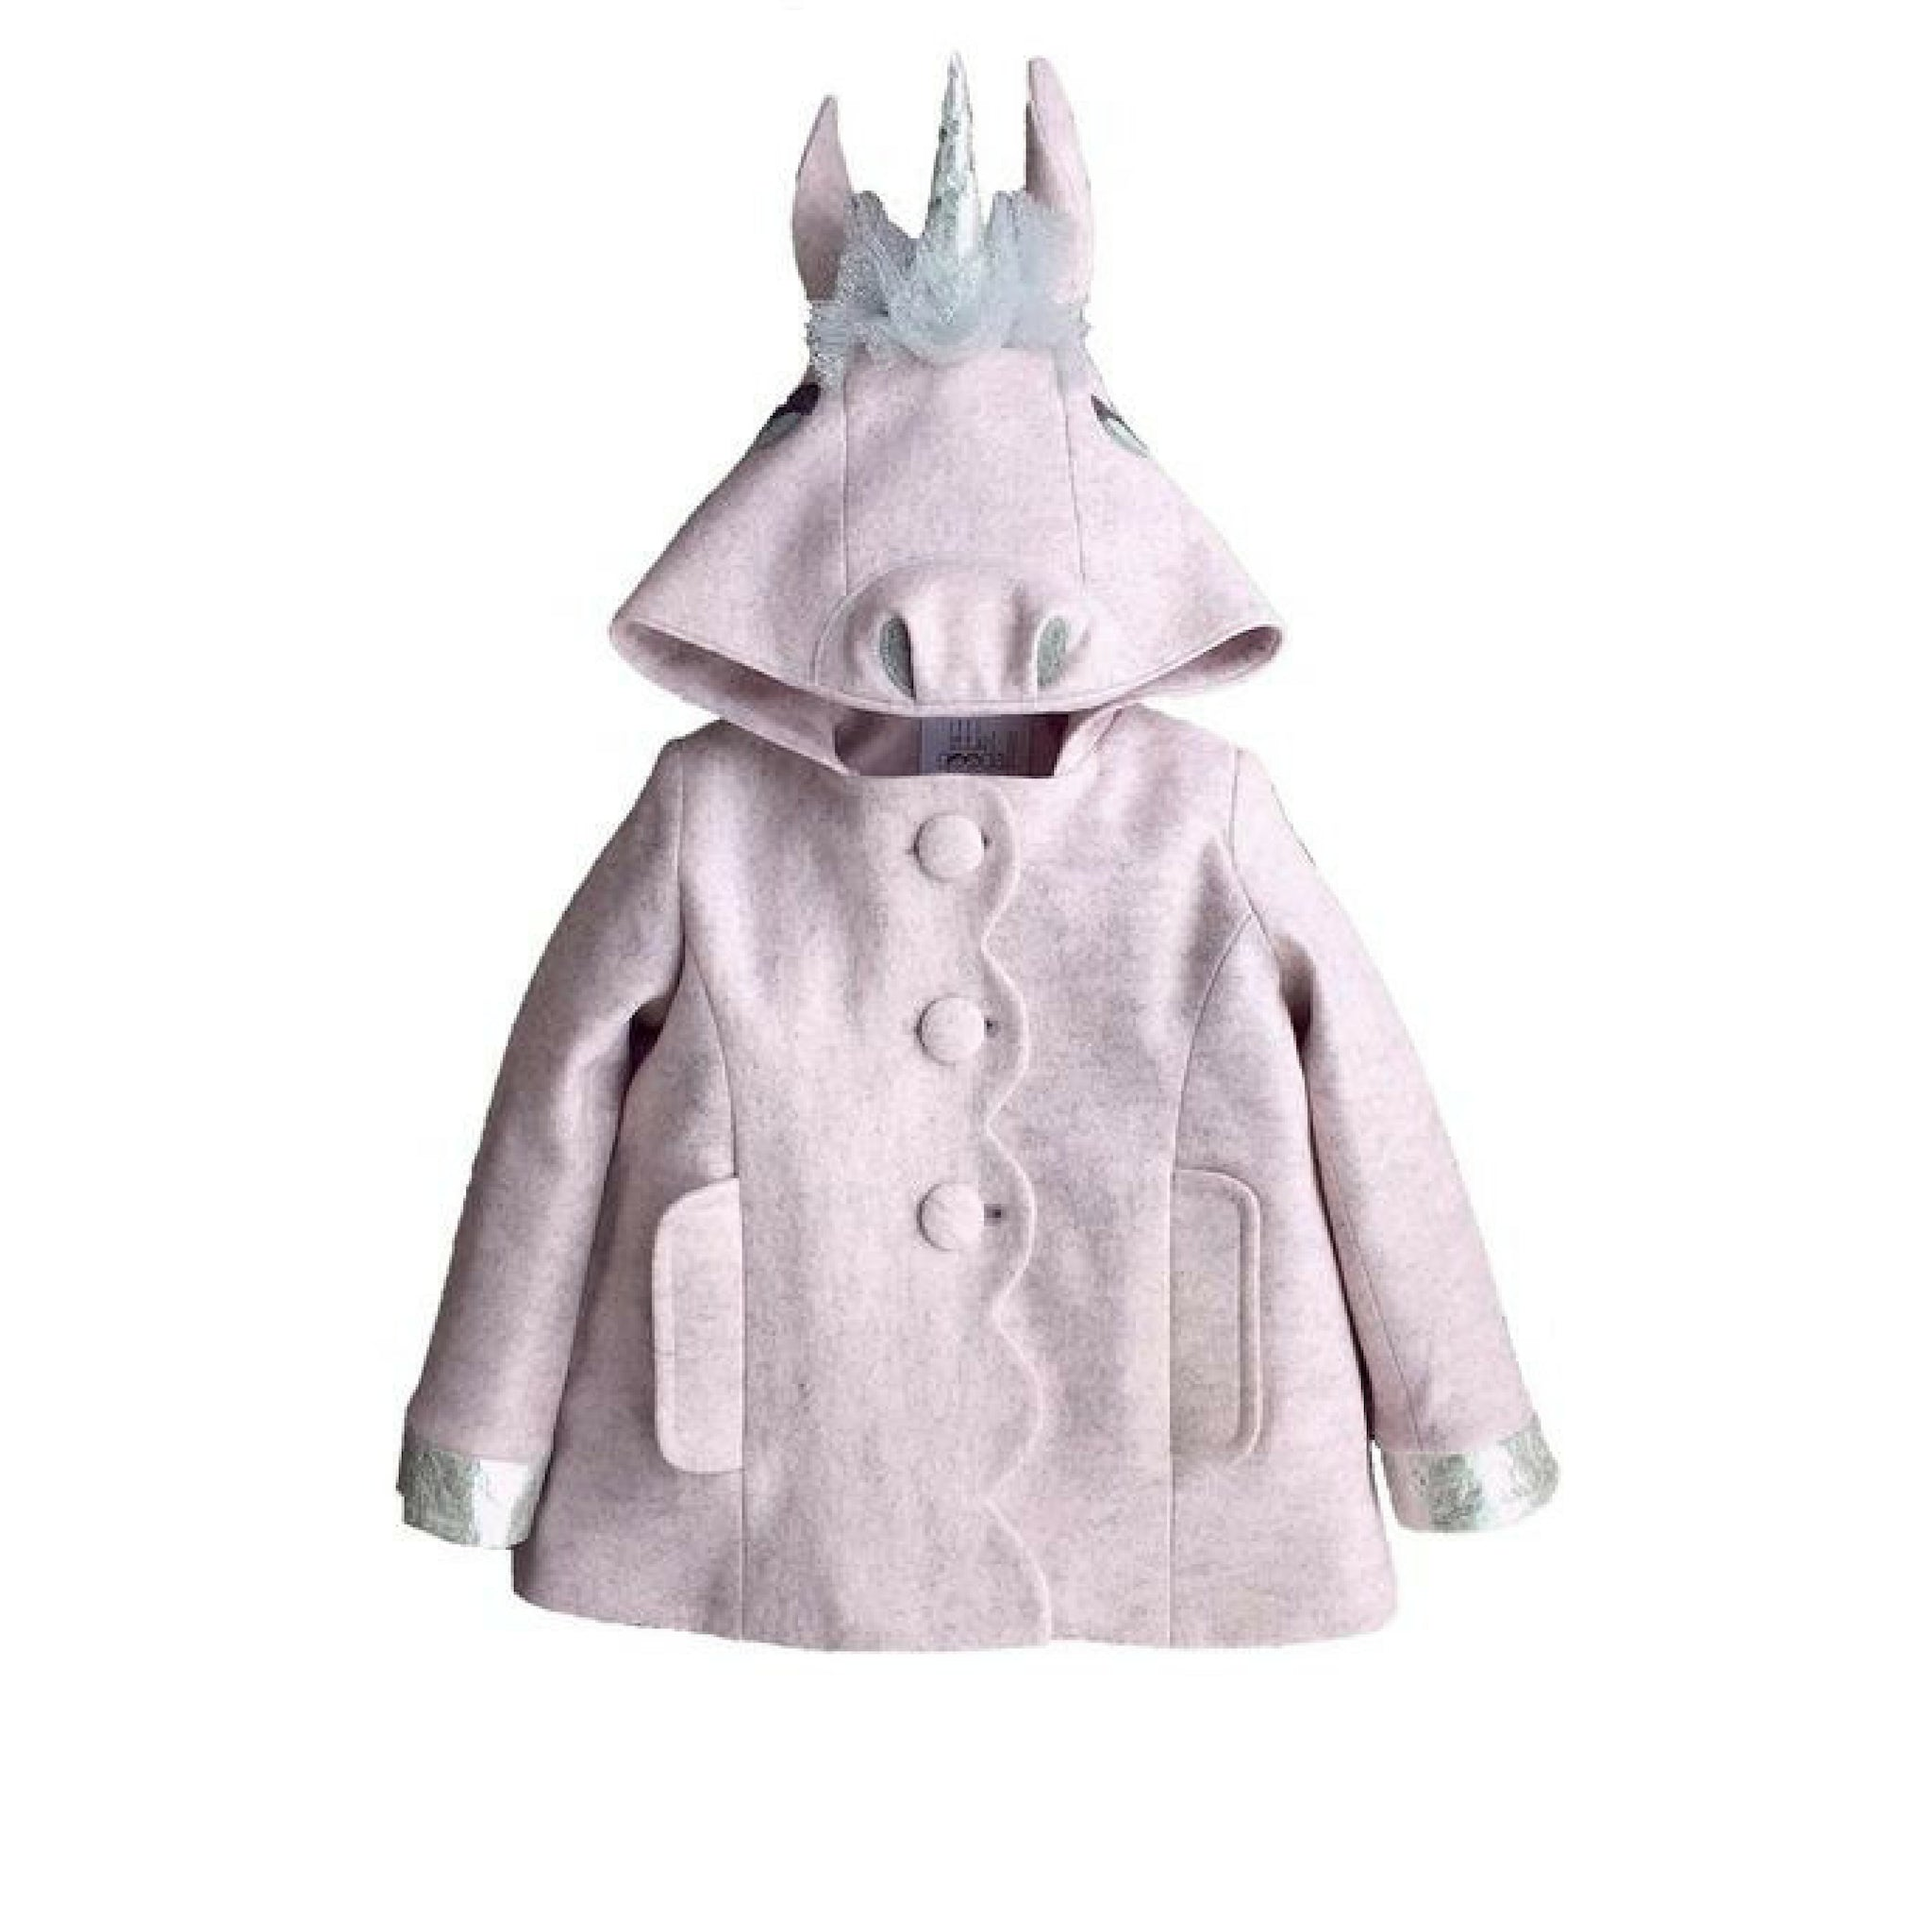 Light pink wool felt dress coat with a scallop closing secured with three buttons. Featuring a unicorn hood with a silver tool mane and horn, along with silver wool felt cuffs at end of sleeves.